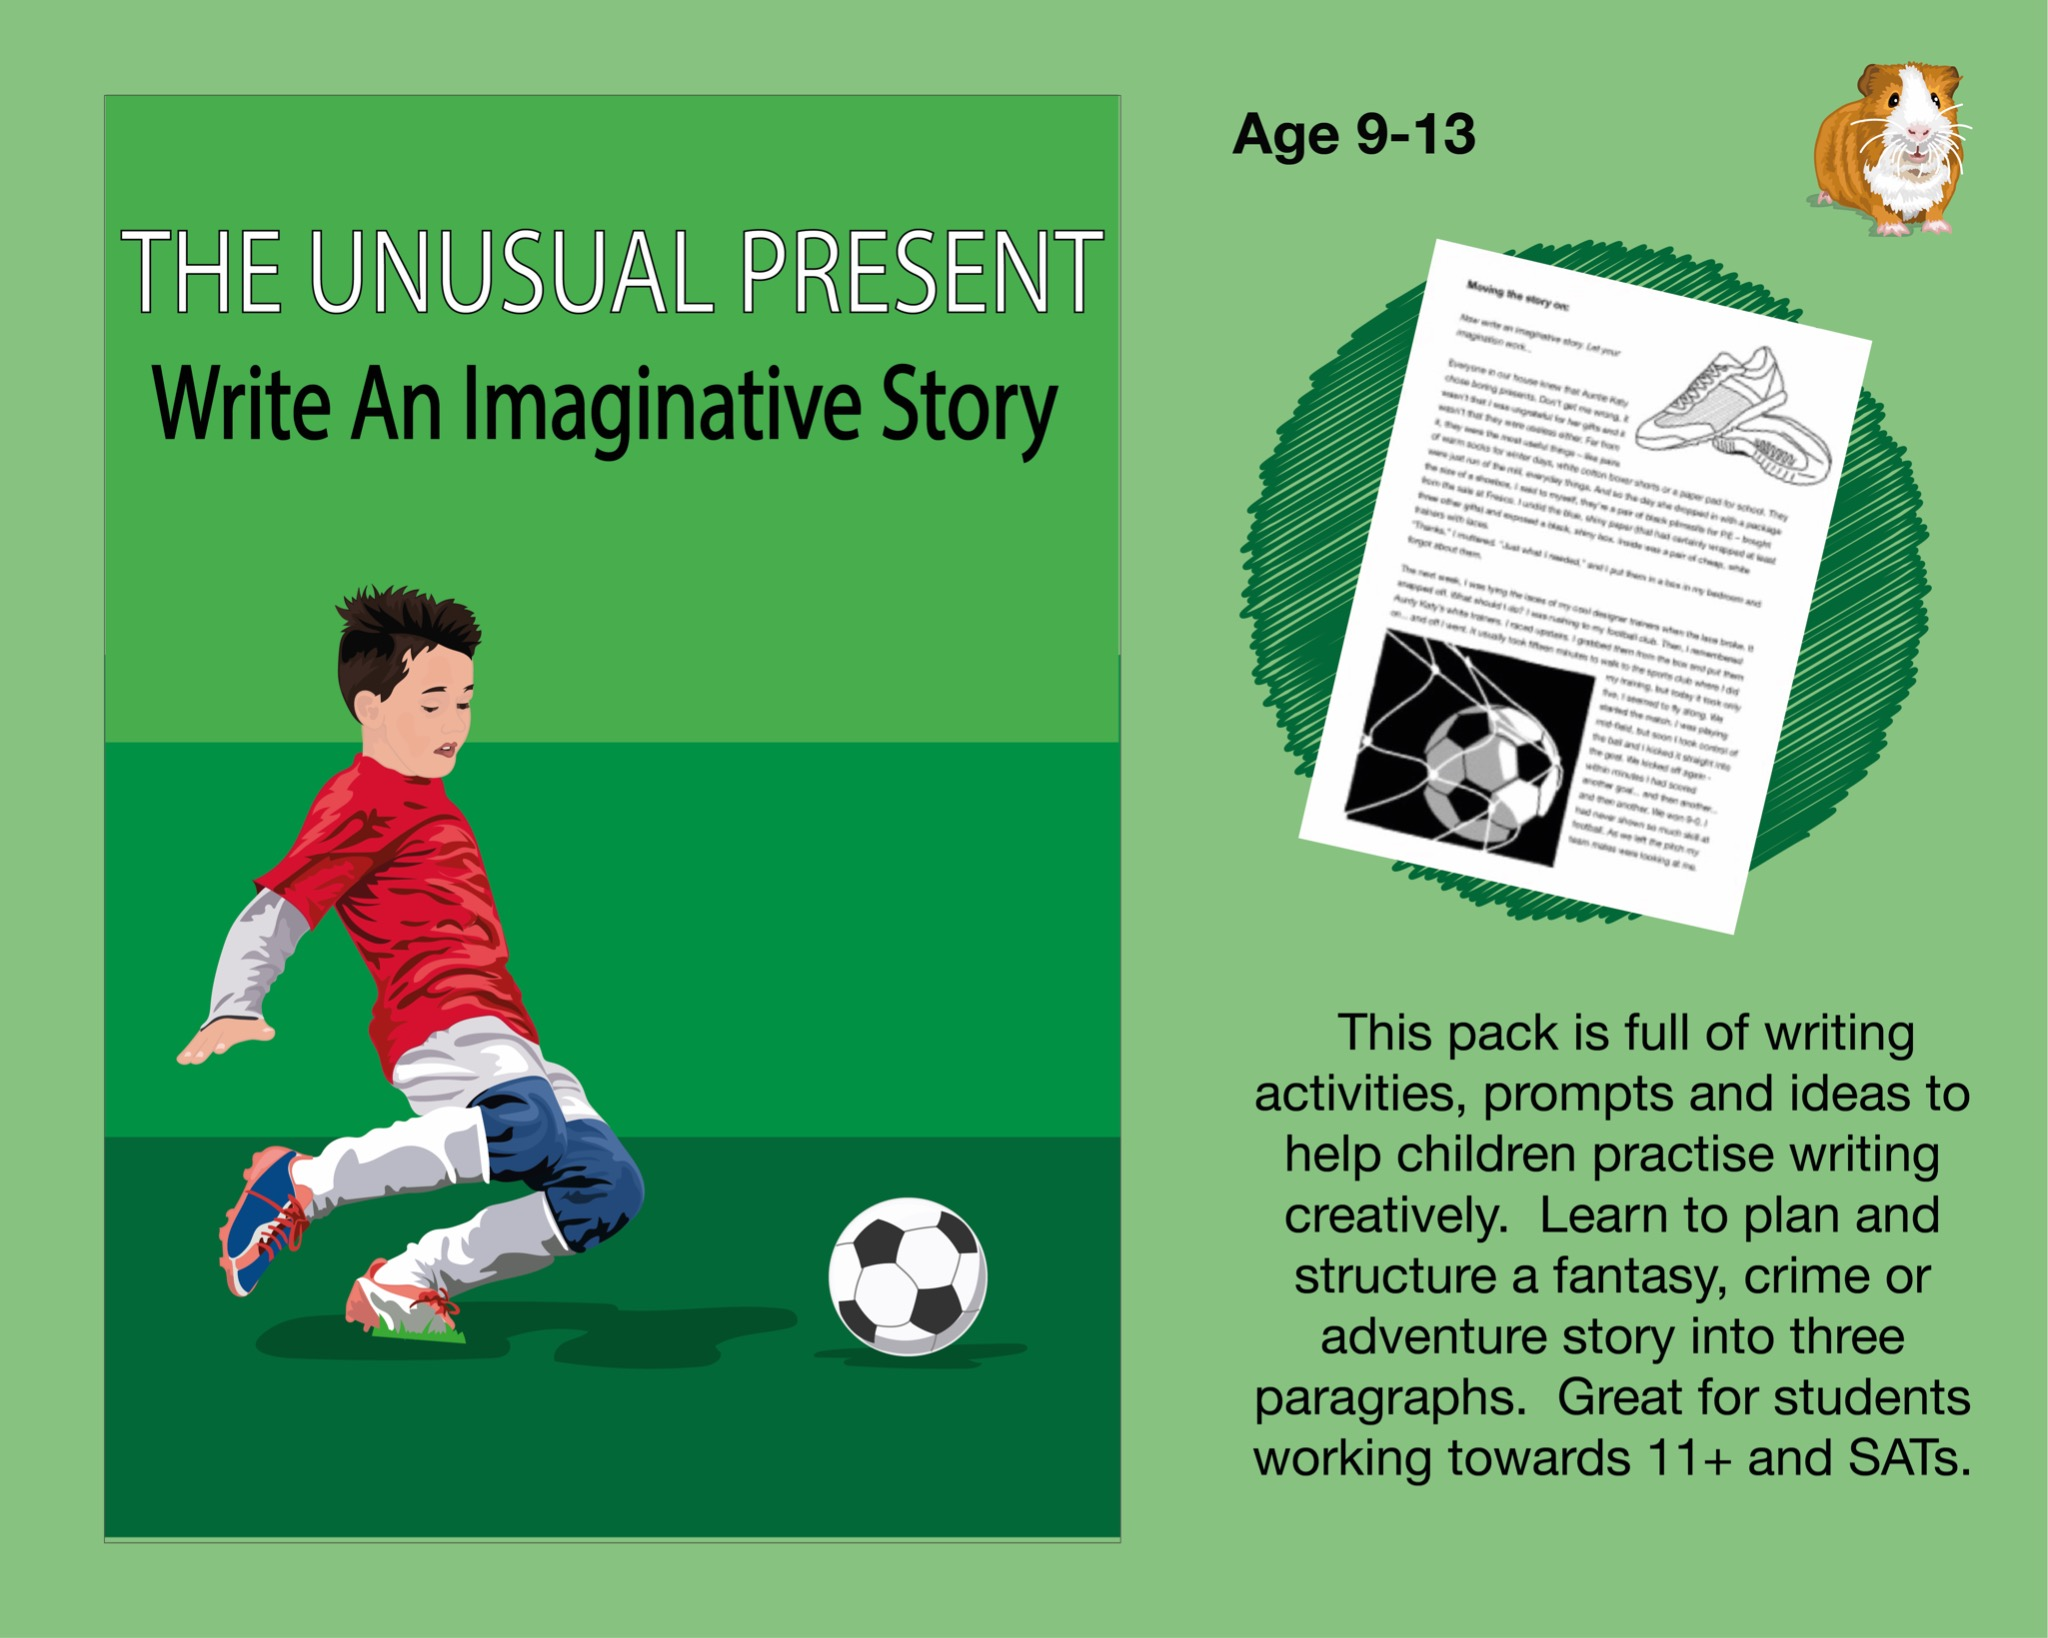 The Unusual Present: Write A Story (And More) (SATS And 11+ Essential Writing Practice) 9-13 years